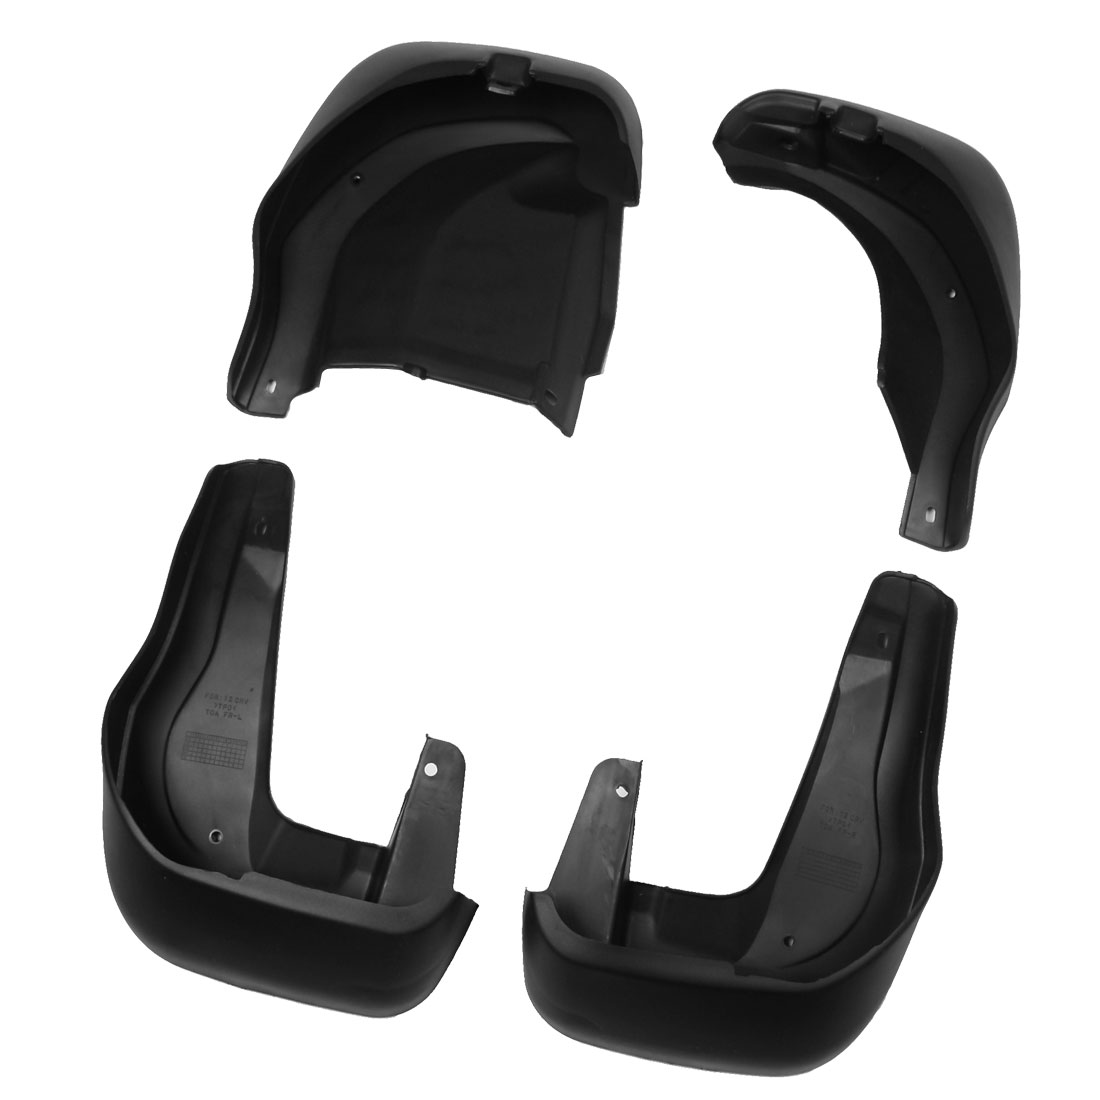 Mudguard Splash Guards Mud Flaps Front + Rear Set for 2012-2013 CRV